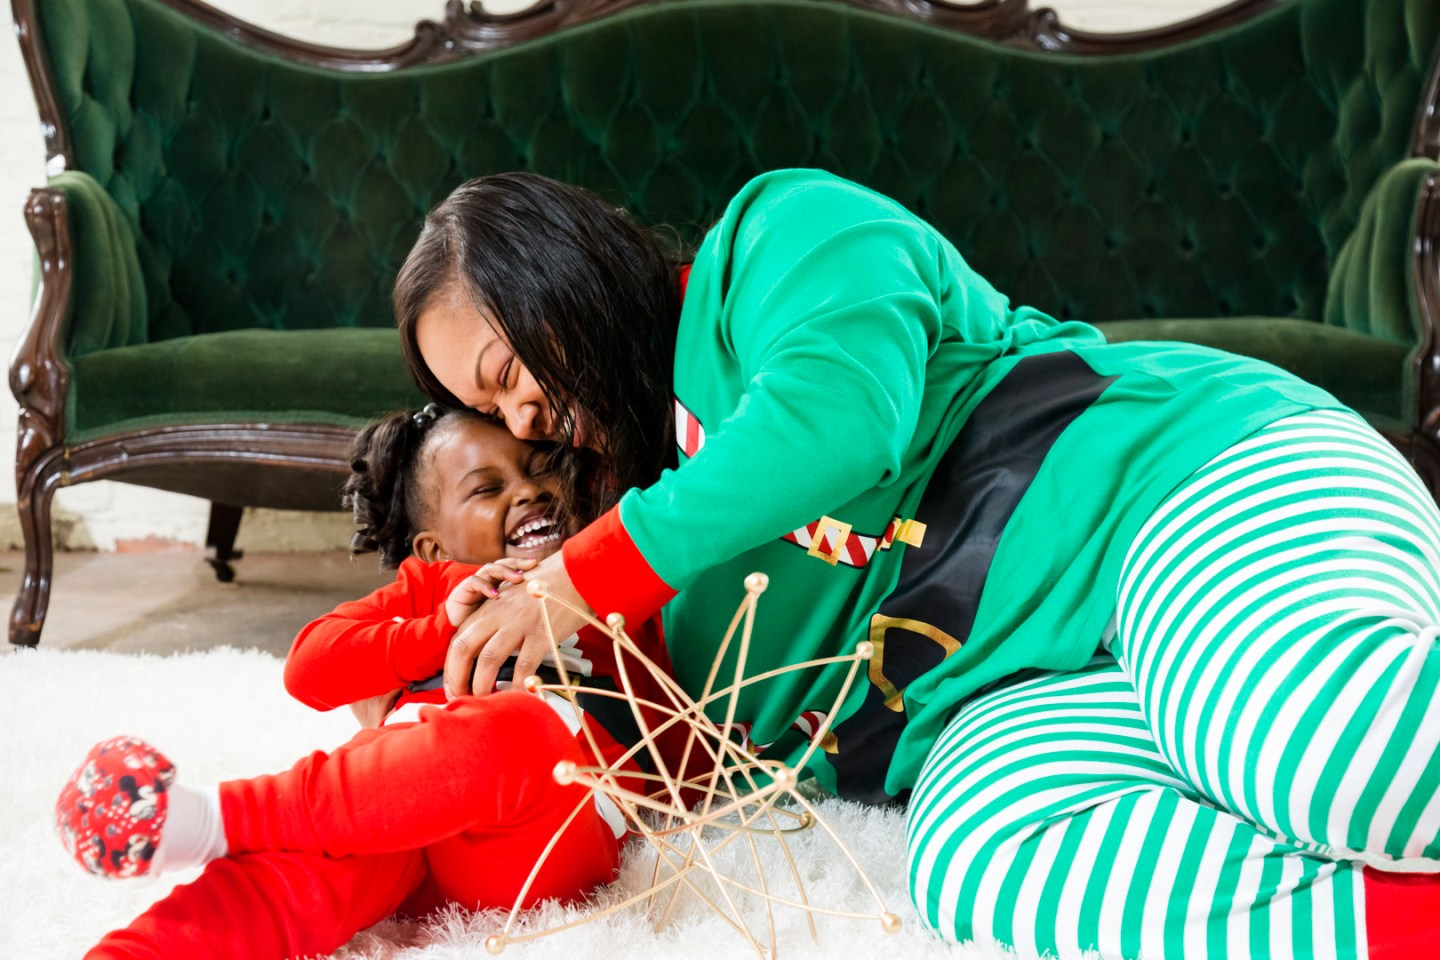 uasj2w4szms3wp1gfk05_big Mommy & Me Christmas PJ Session in Greensboro, NC